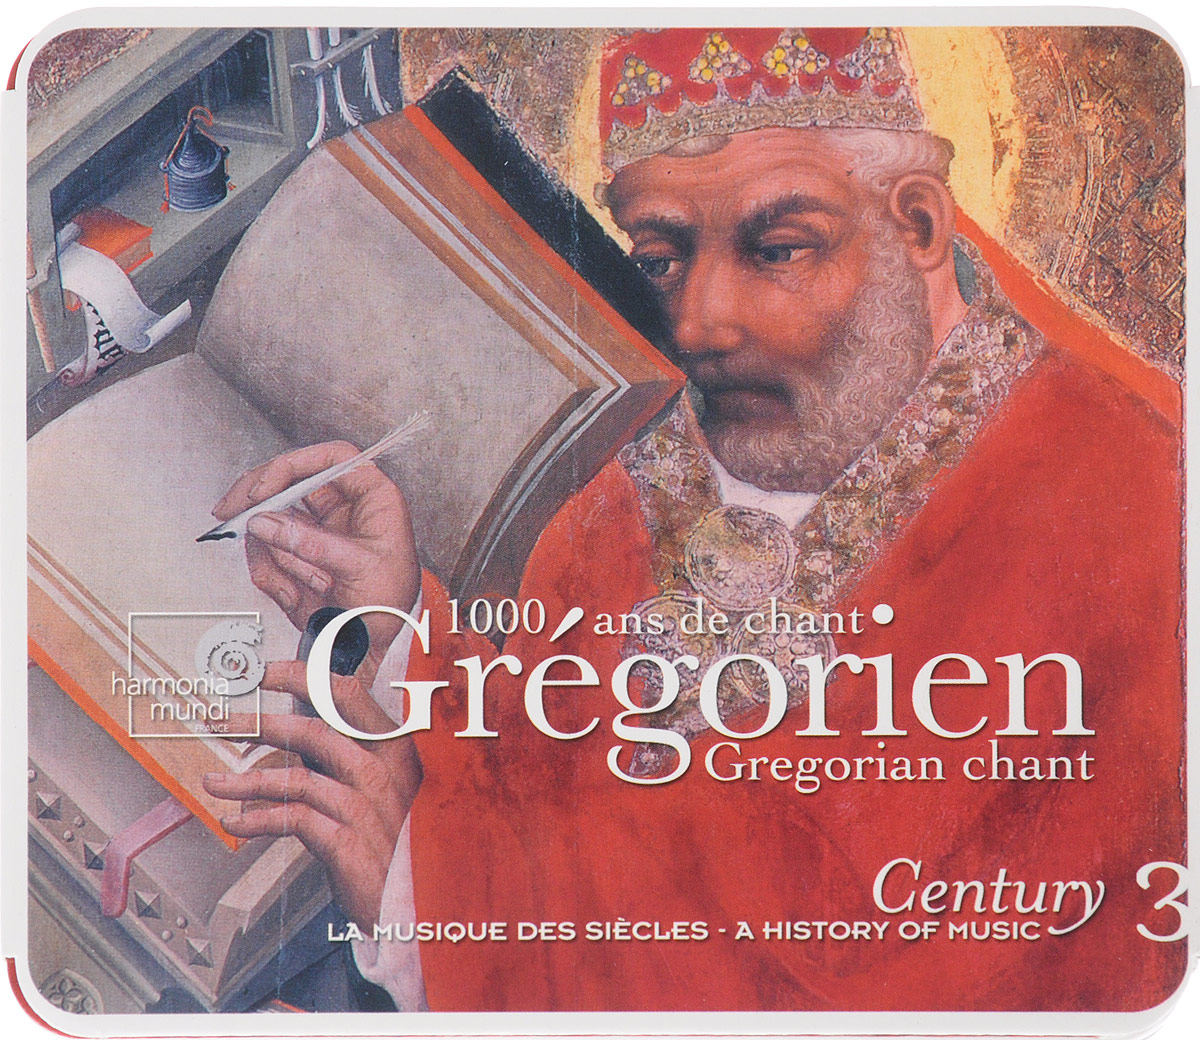 VARIOUS. GREGORIAN CHANT. GREGORIAN UNIFICATION AND THE LOCAL REPERTORIES. 1 a brief history of time